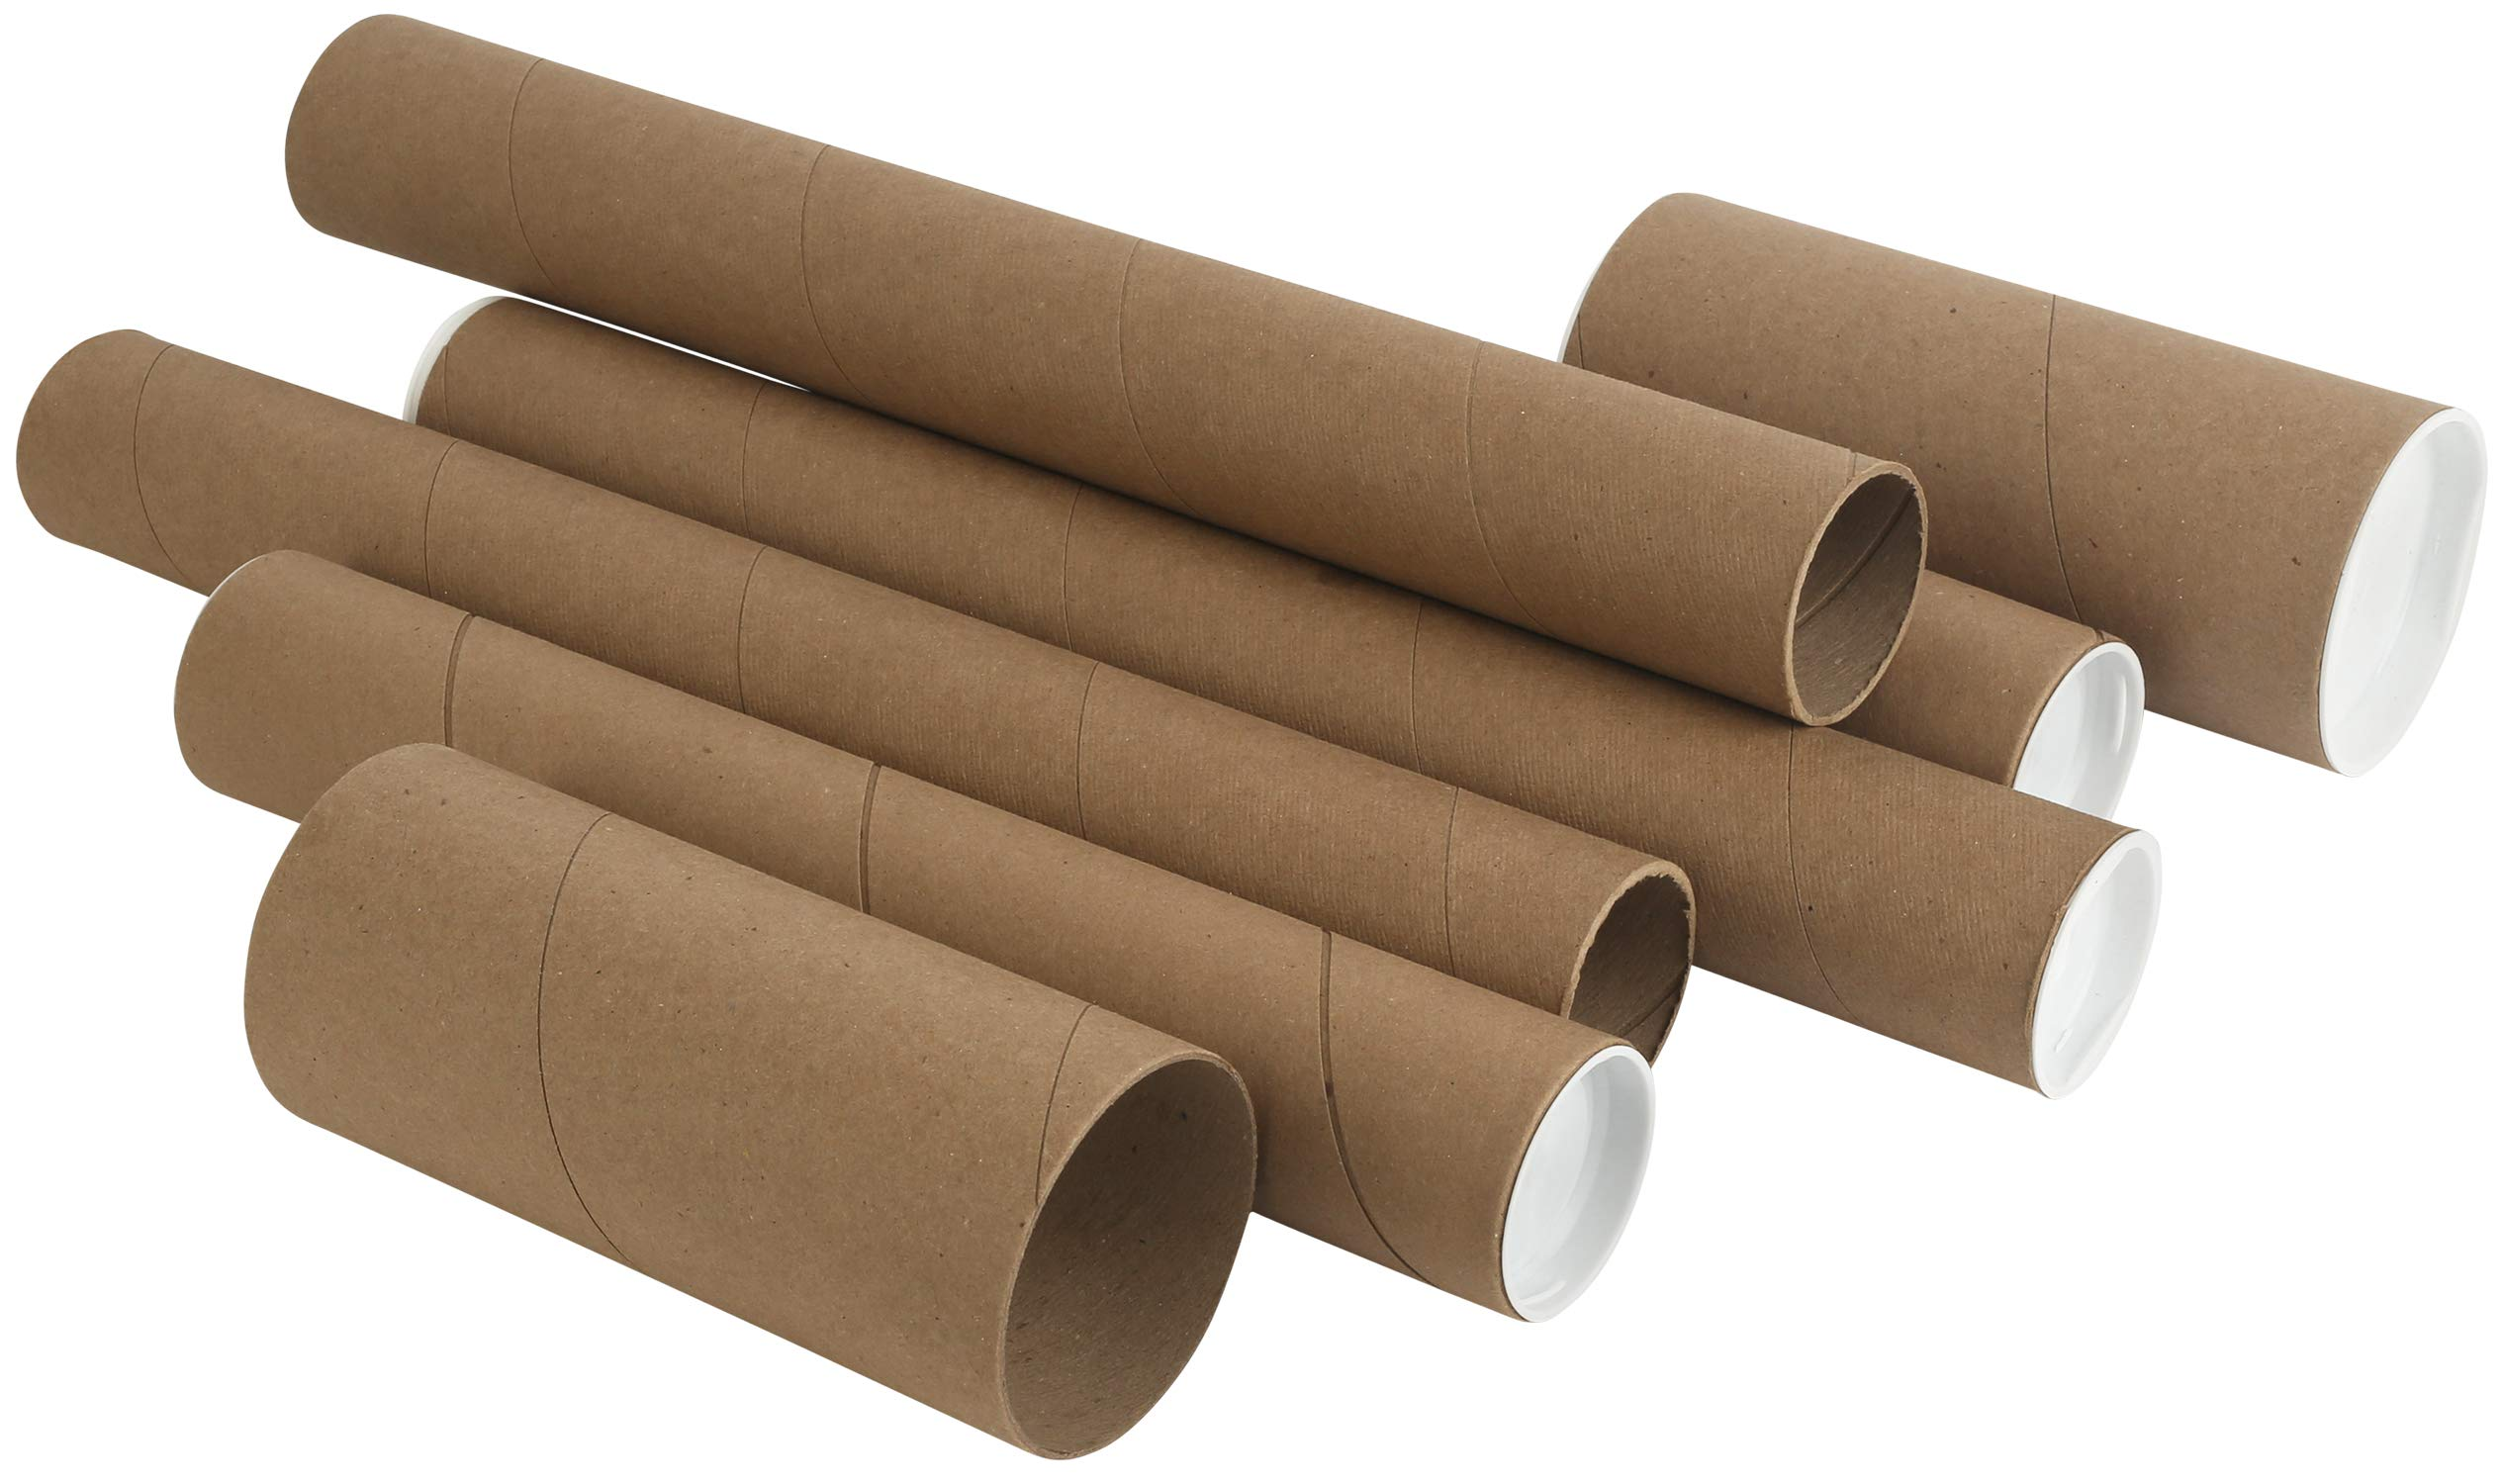 Kraft Mailing/Shipping Tubes with White End Caps by MT Products (3 inches Wide x 6 inches Length) (6 Pieces) by MT Products